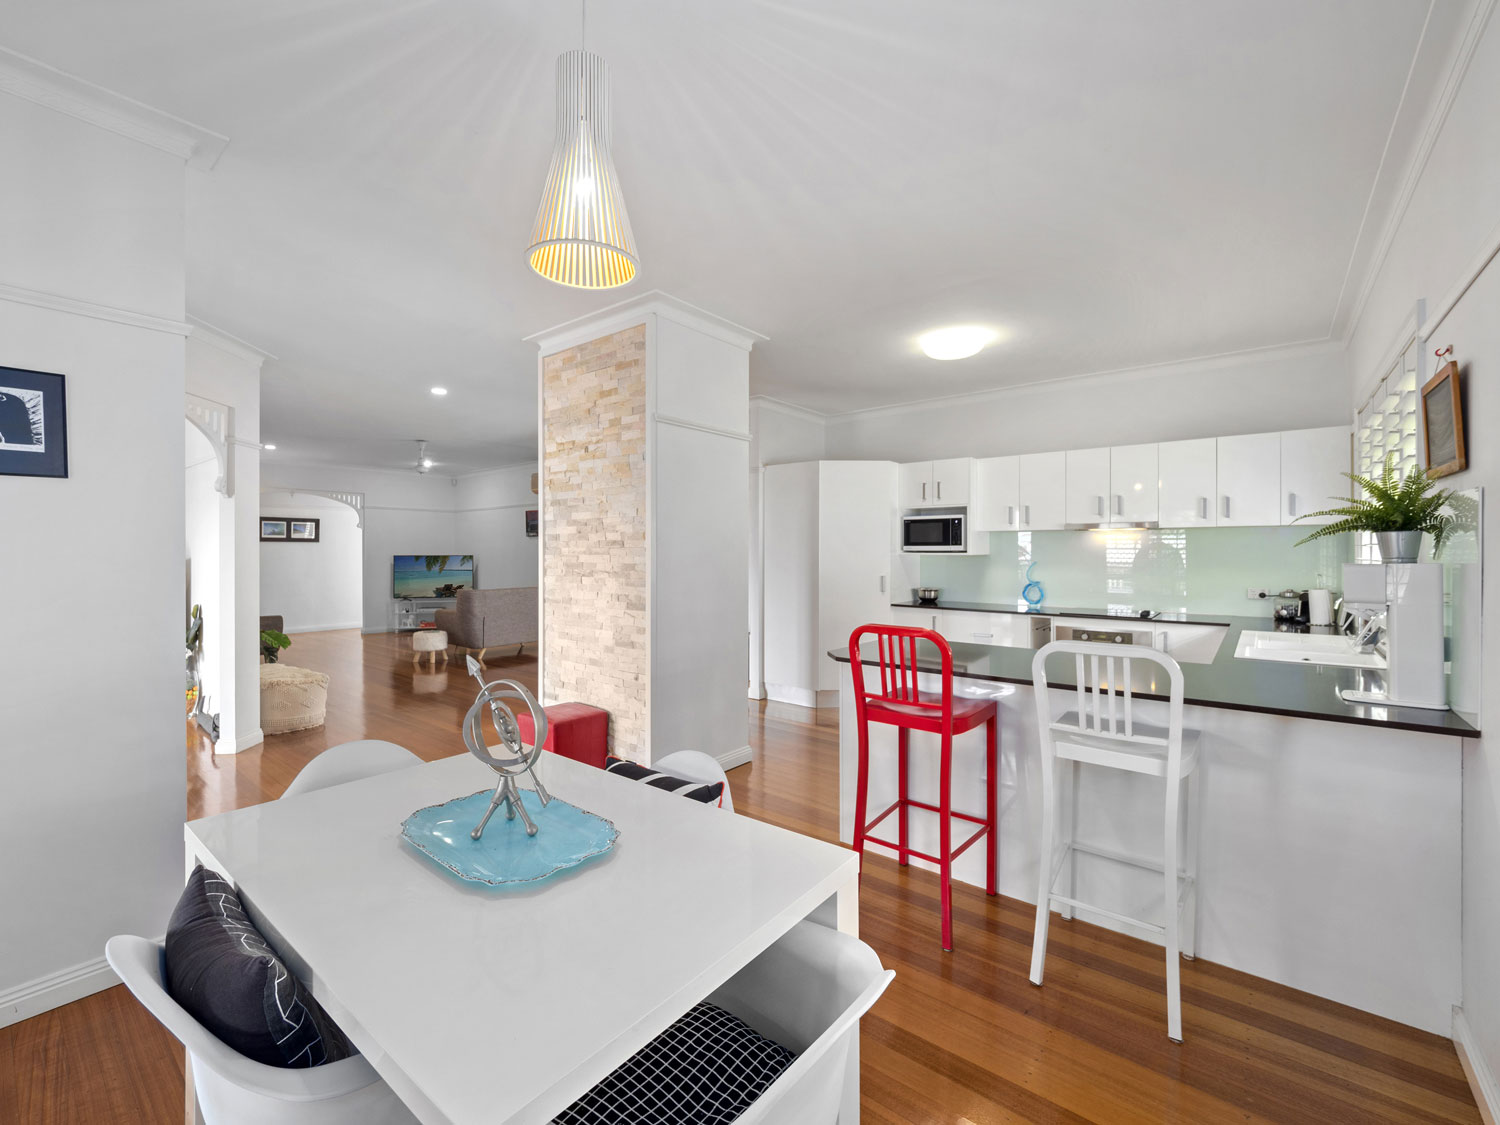 Interior photography of a home for sale at Eaton's Hill